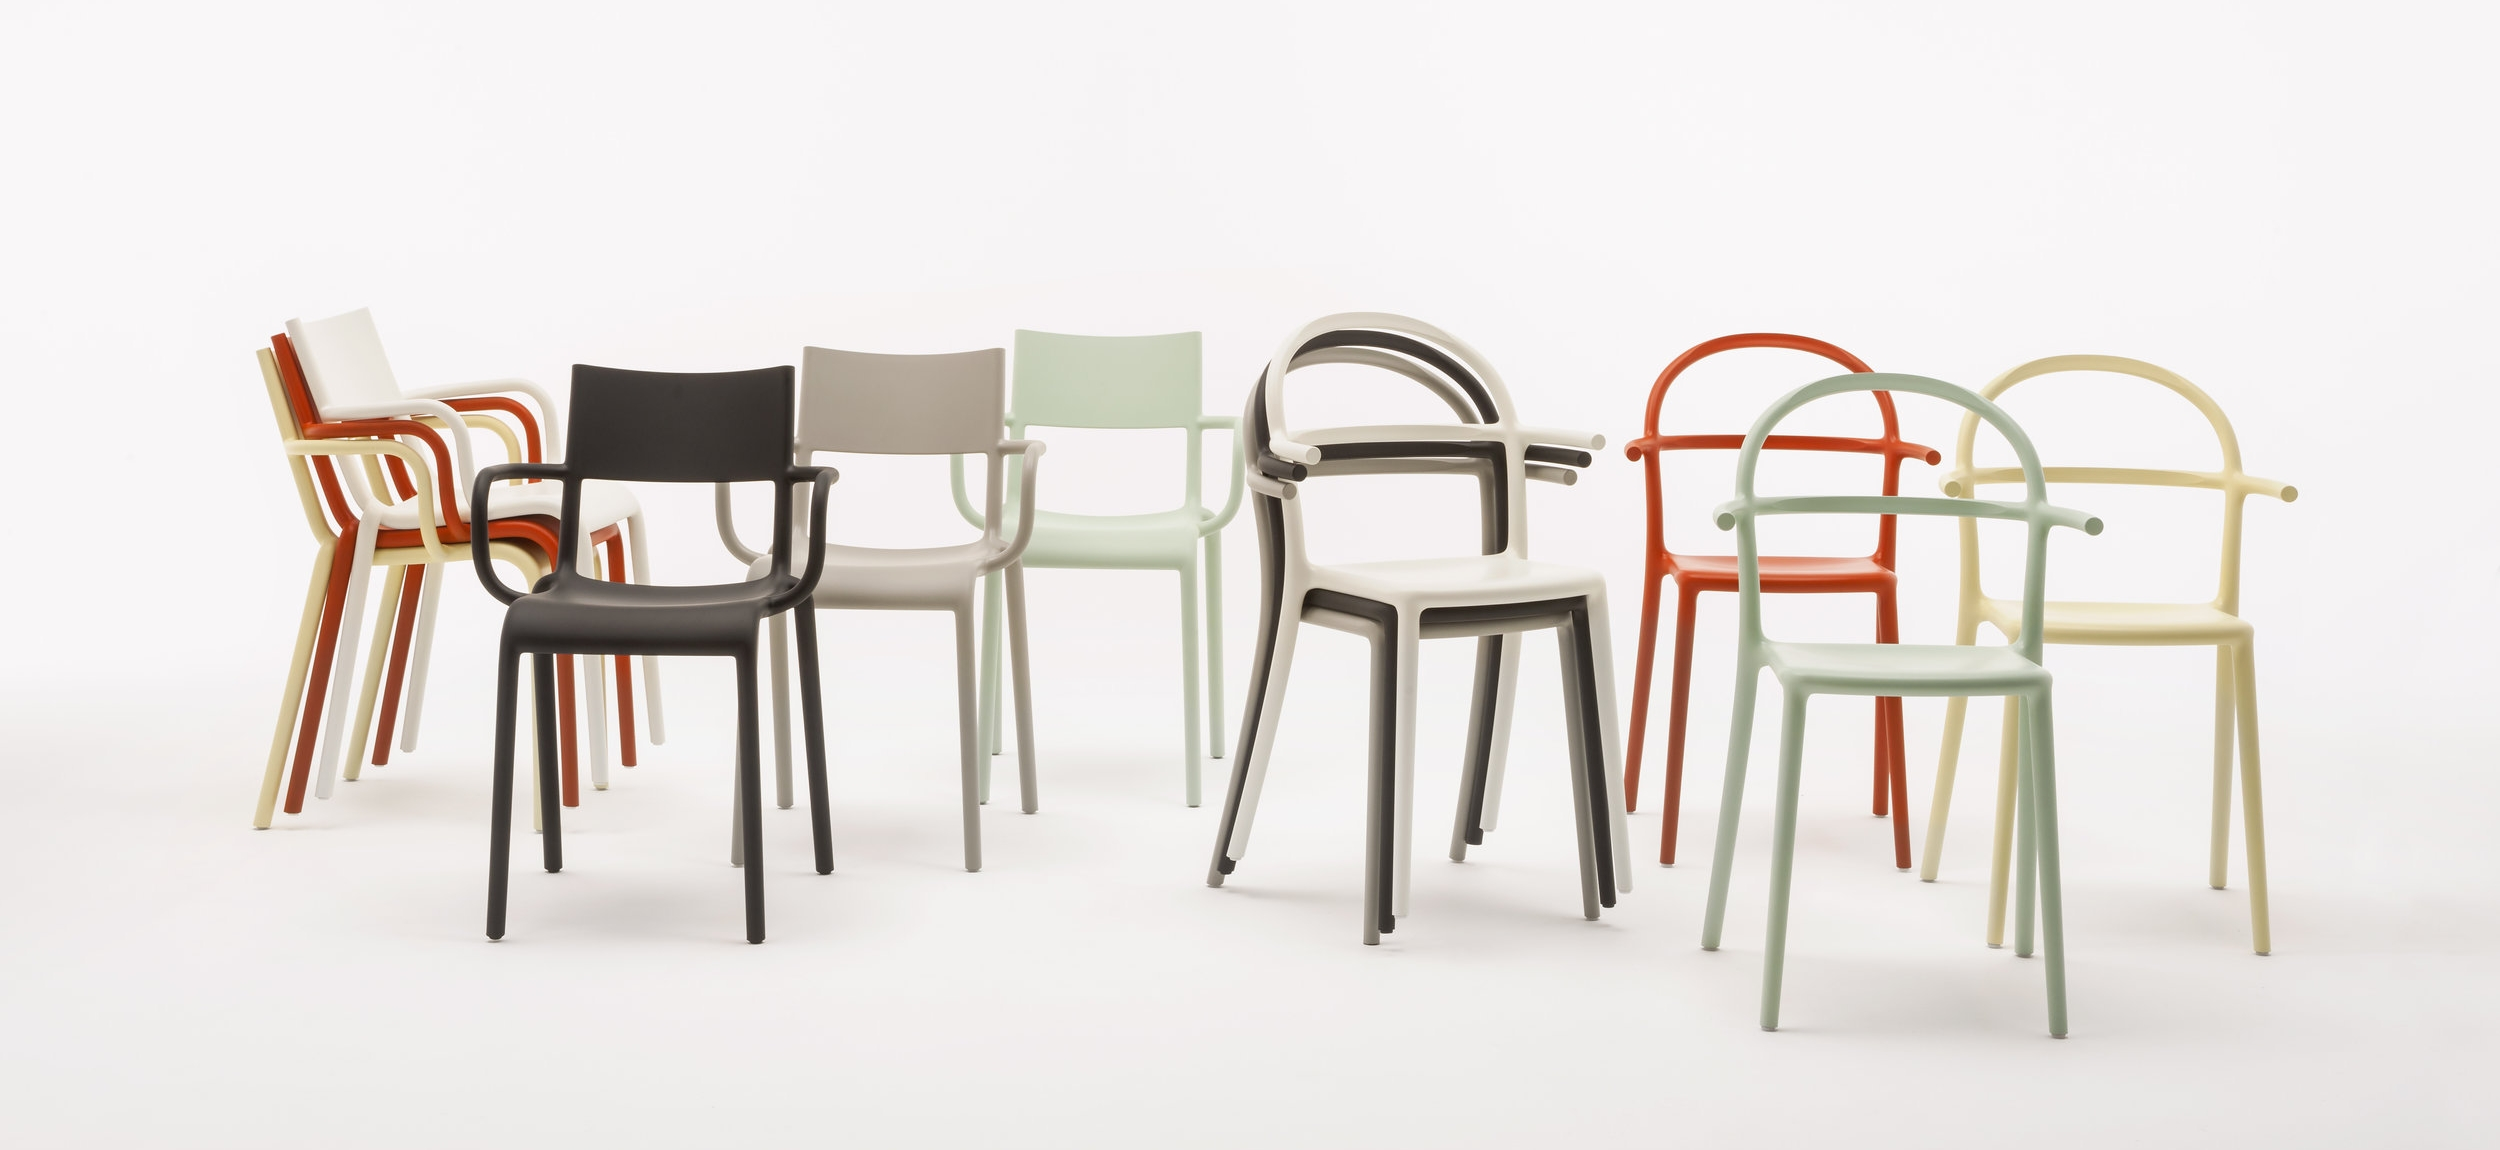 The Generic collection, the A chair for the office, and the Generic C chairs for restaurants. But like all of Starck's design, each chair is interchangeable and flexible across applications.